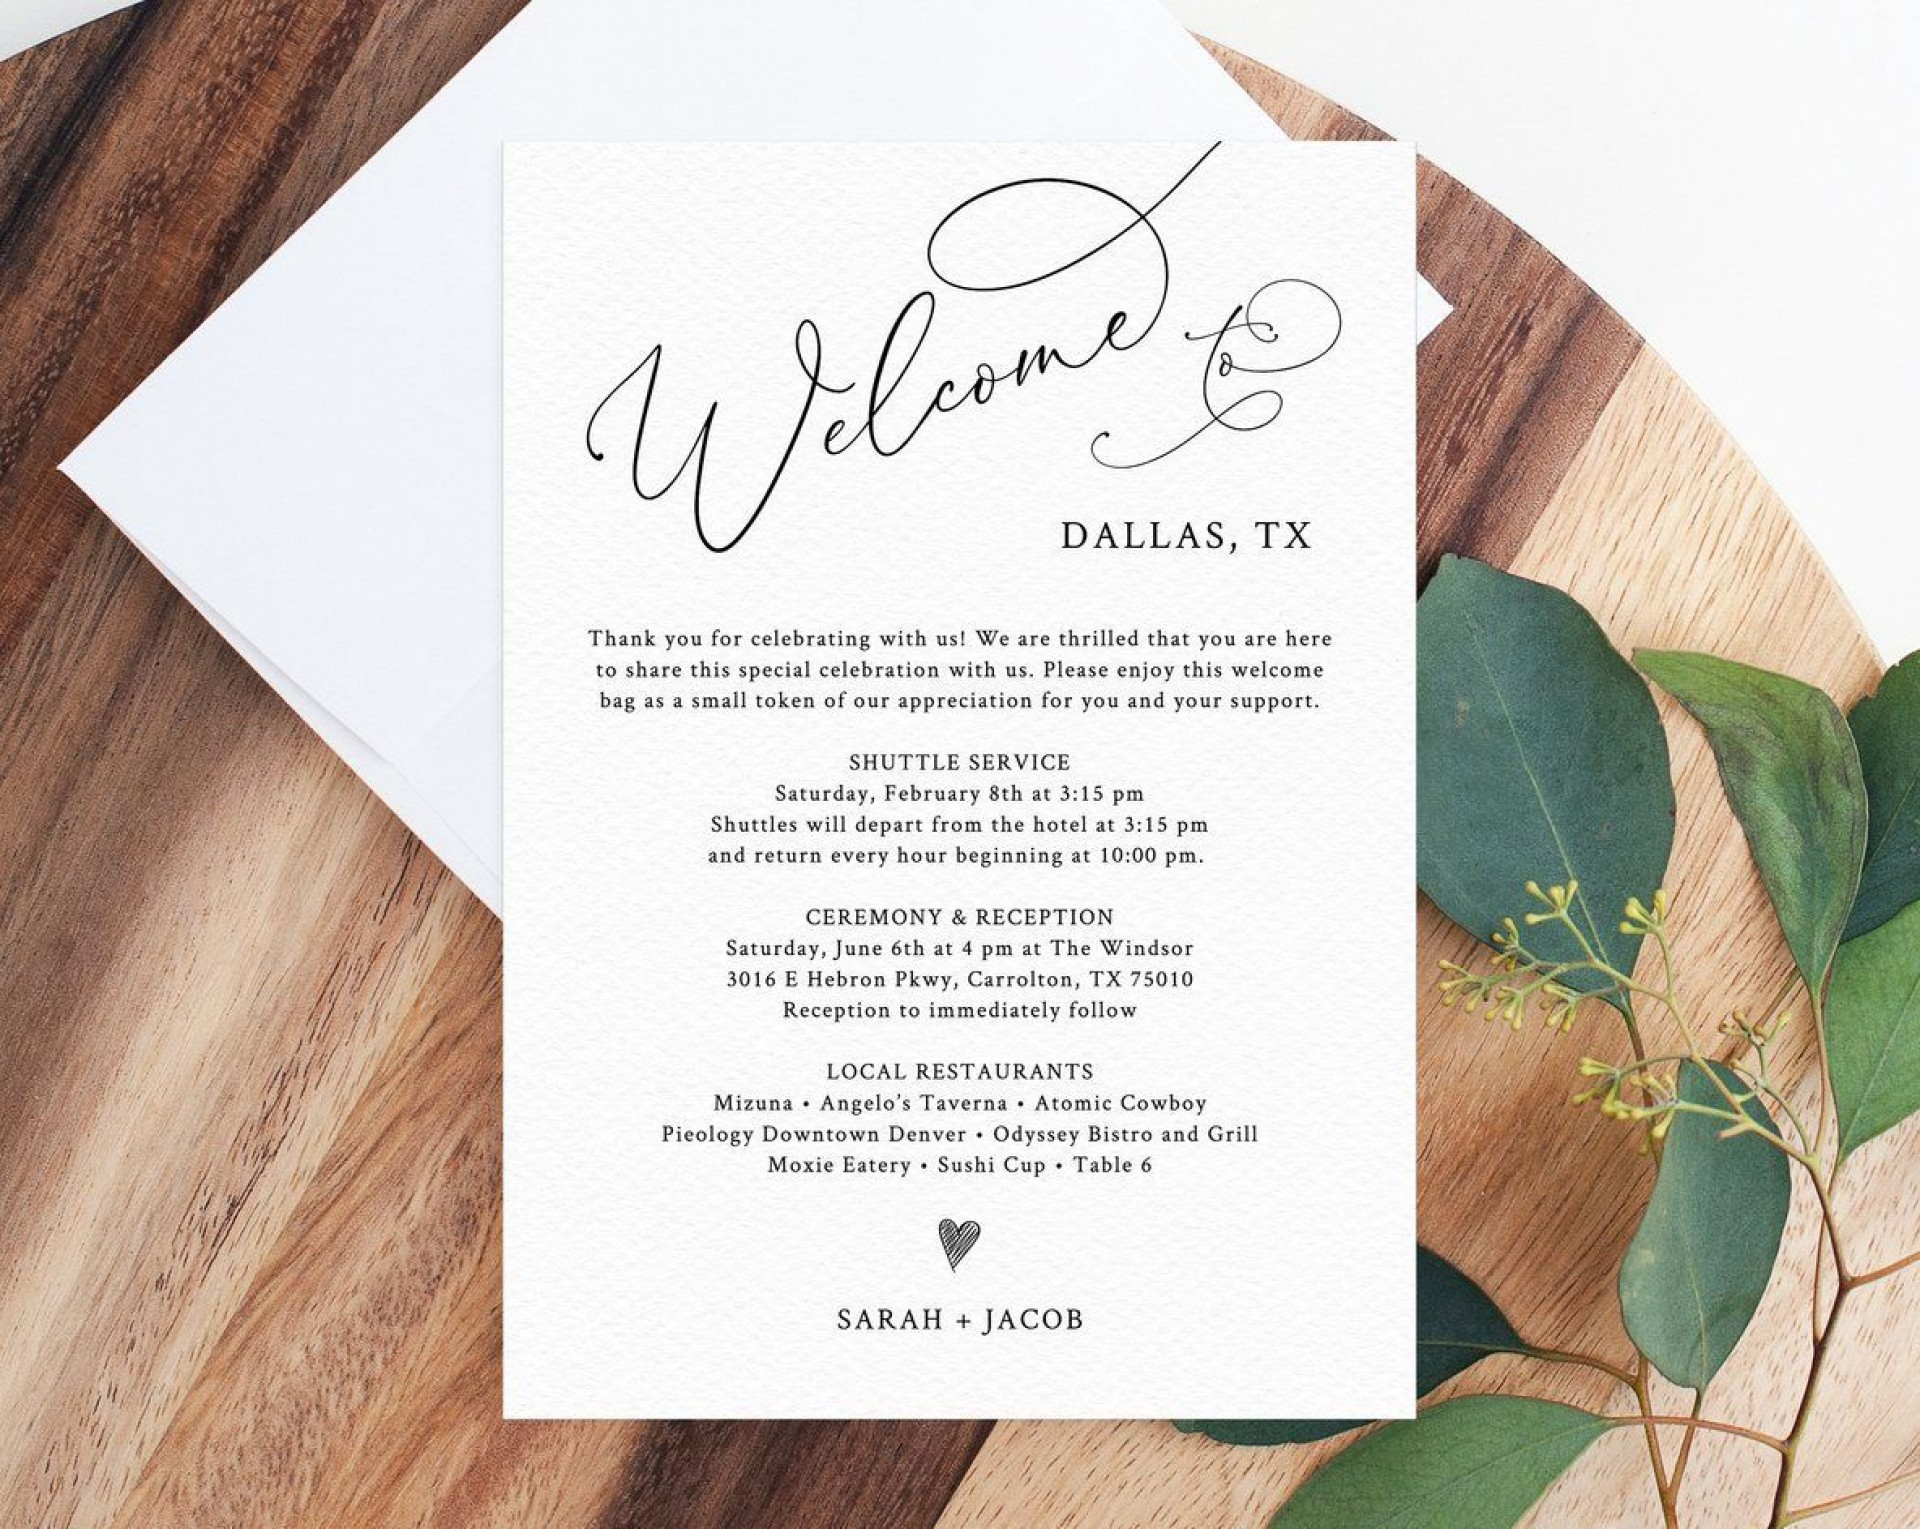 004 Striking Wedding Hotel Welcome Letter Template Photo 1920